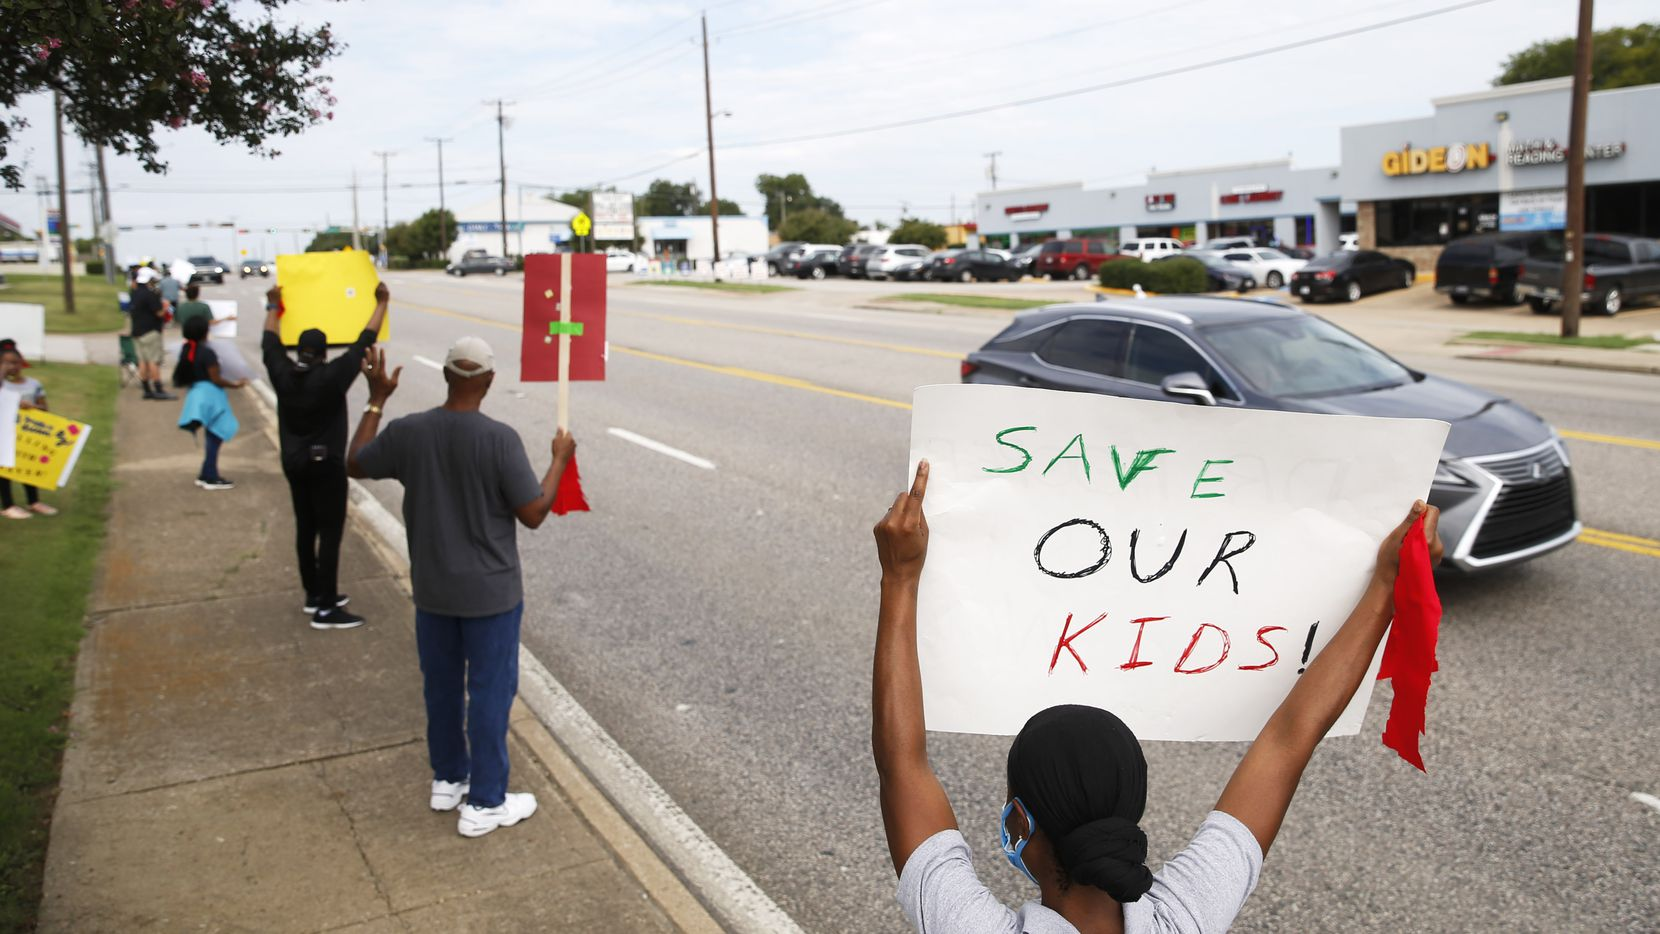 This summer parents and community members protested outside the DeSoto ISD administration building when Superintendent D'Andre Weaver suddenly resigned. But a few days later, Weaver rescinded that decision and the state stepped in and appointed an conservator to help right the district.